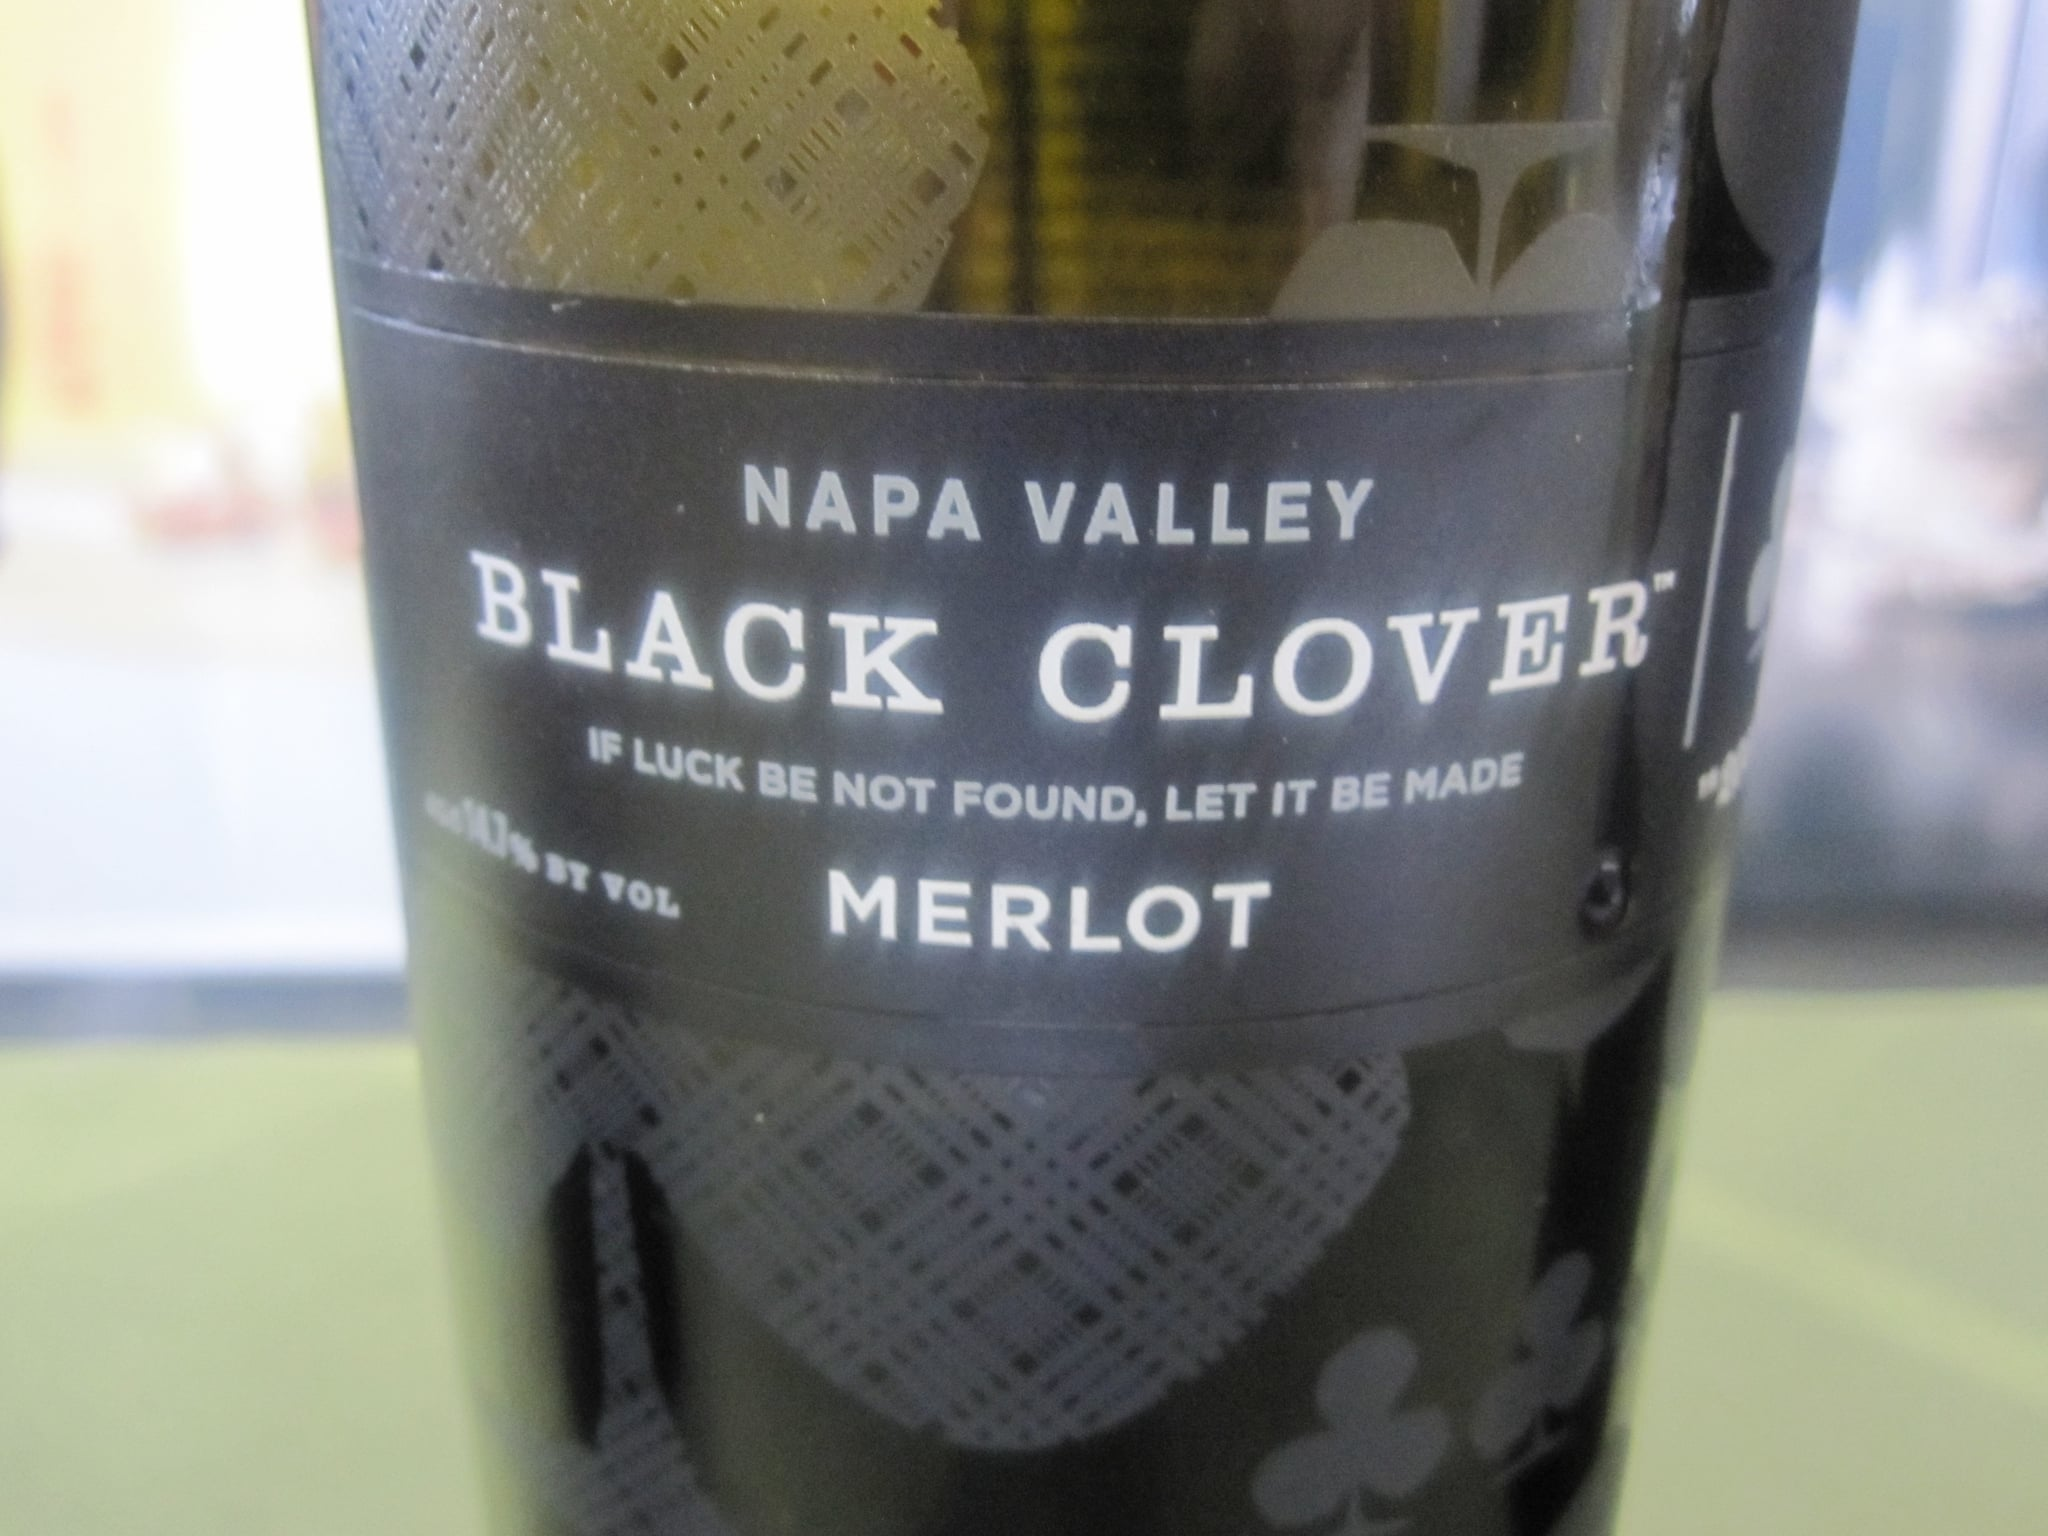 The Black Clover Merlot is fruit-forward and easy drinking, but unfortunately, out of my price range.